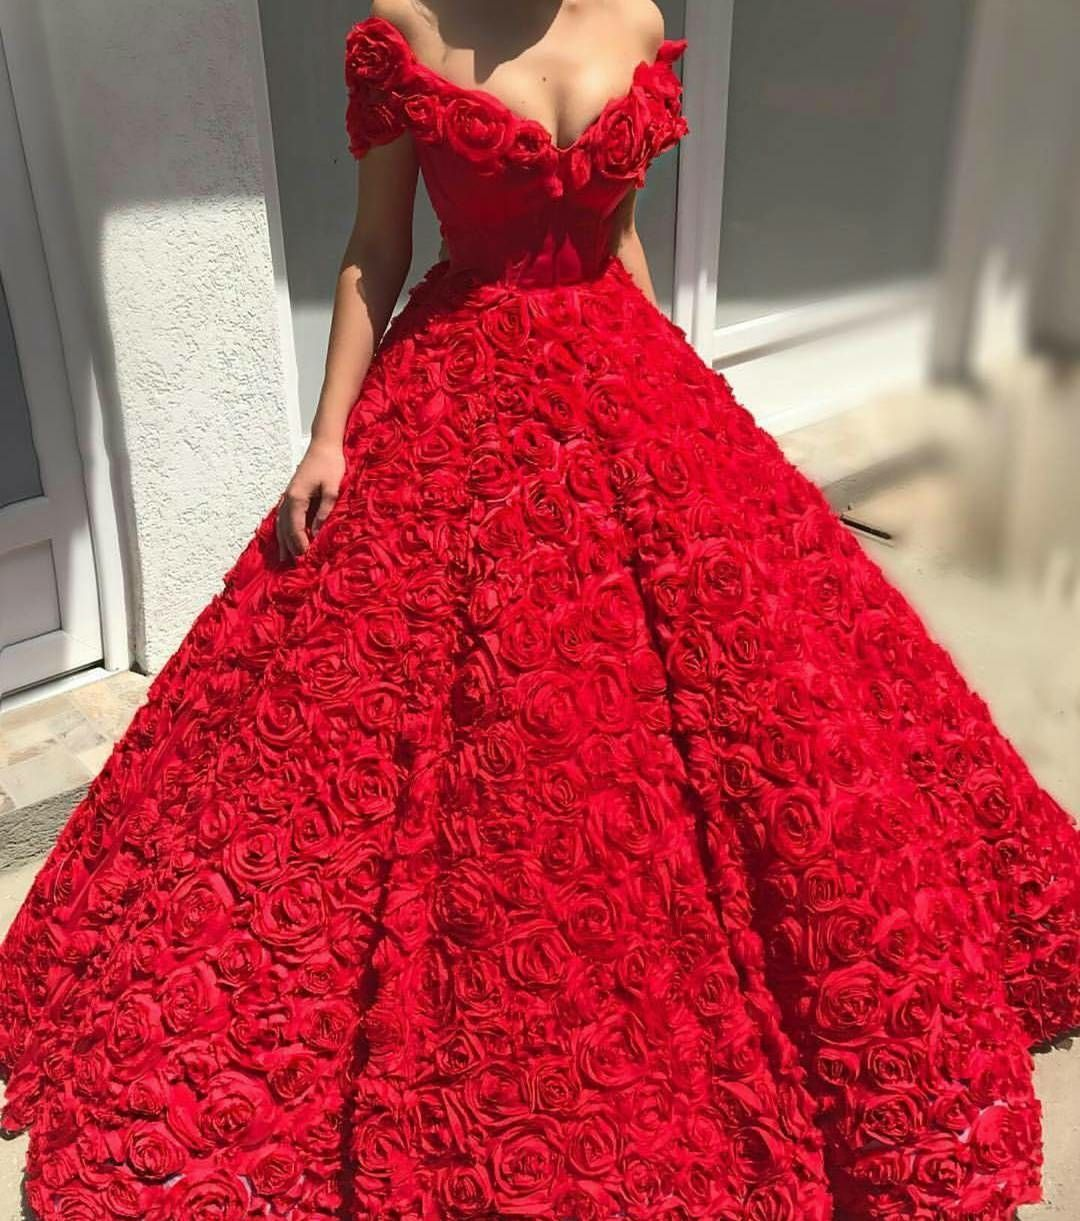 Custom Evening Dresses - Couture Formal Ball Gowns